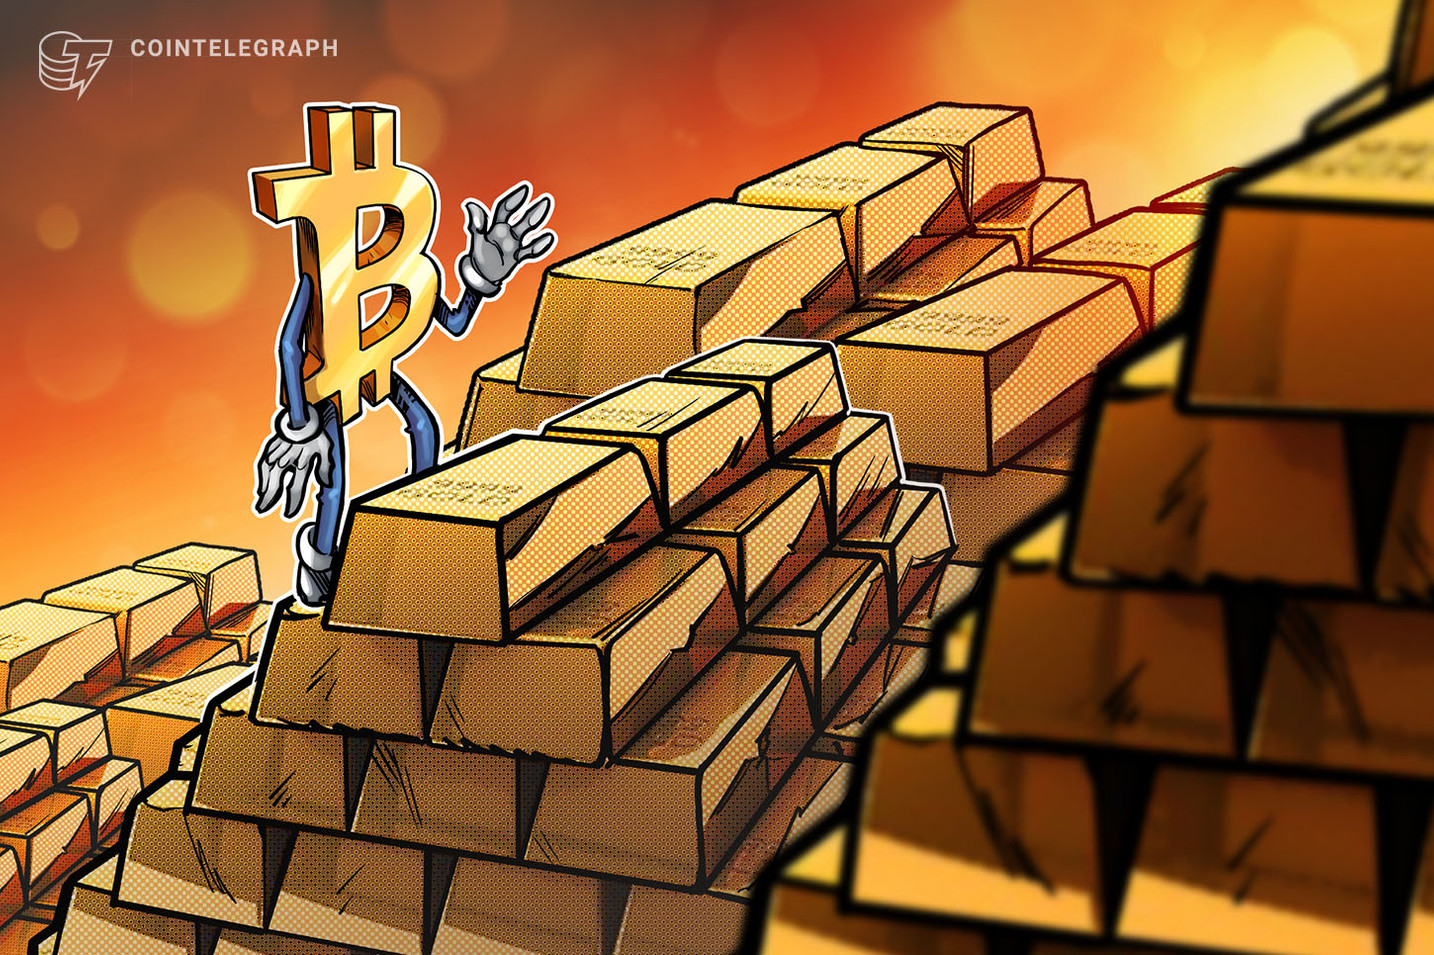 Bitcoin has actually only taken 2% of gold market cap, new data suggests